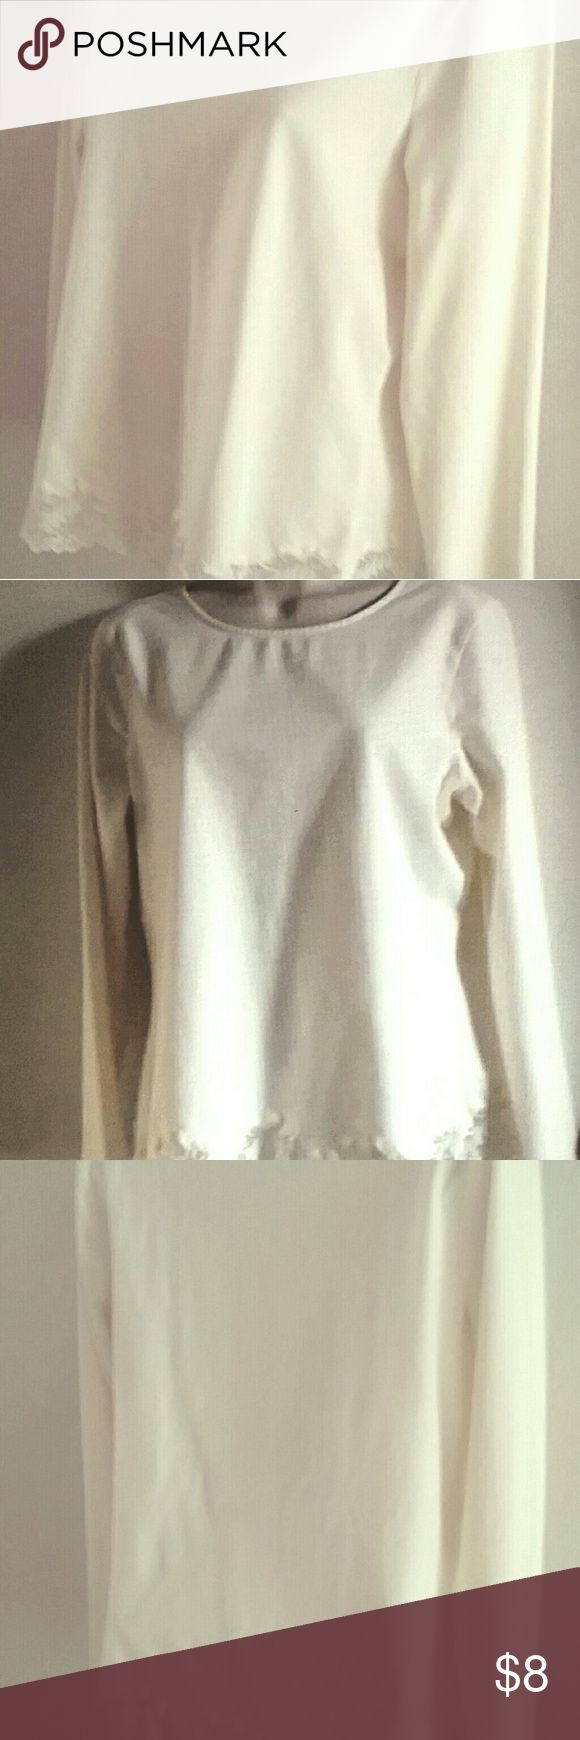 "COLDWATER CREEK  Top Size 14-16 Cream Womens Top Long Sleeve 15"" shoulder to shoulder, 19"" underarm to underarm in front, 22"" sleeve length - ivory color Coldwater Creek Tops"